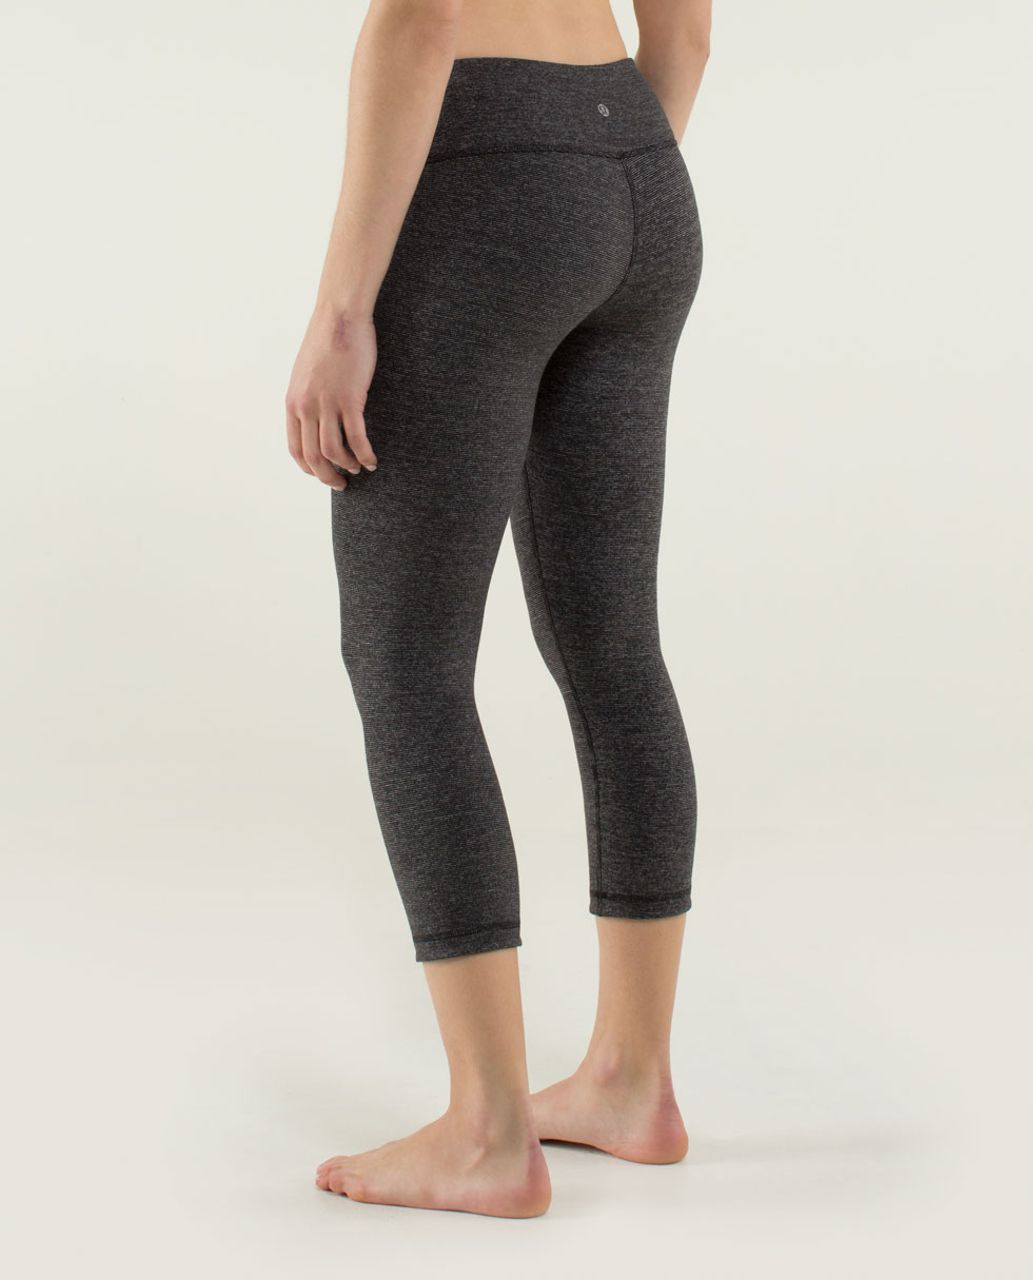 Lululemon Wunder Under Crop *Reversible - Wee Stripe Black Heathered Black /  Black